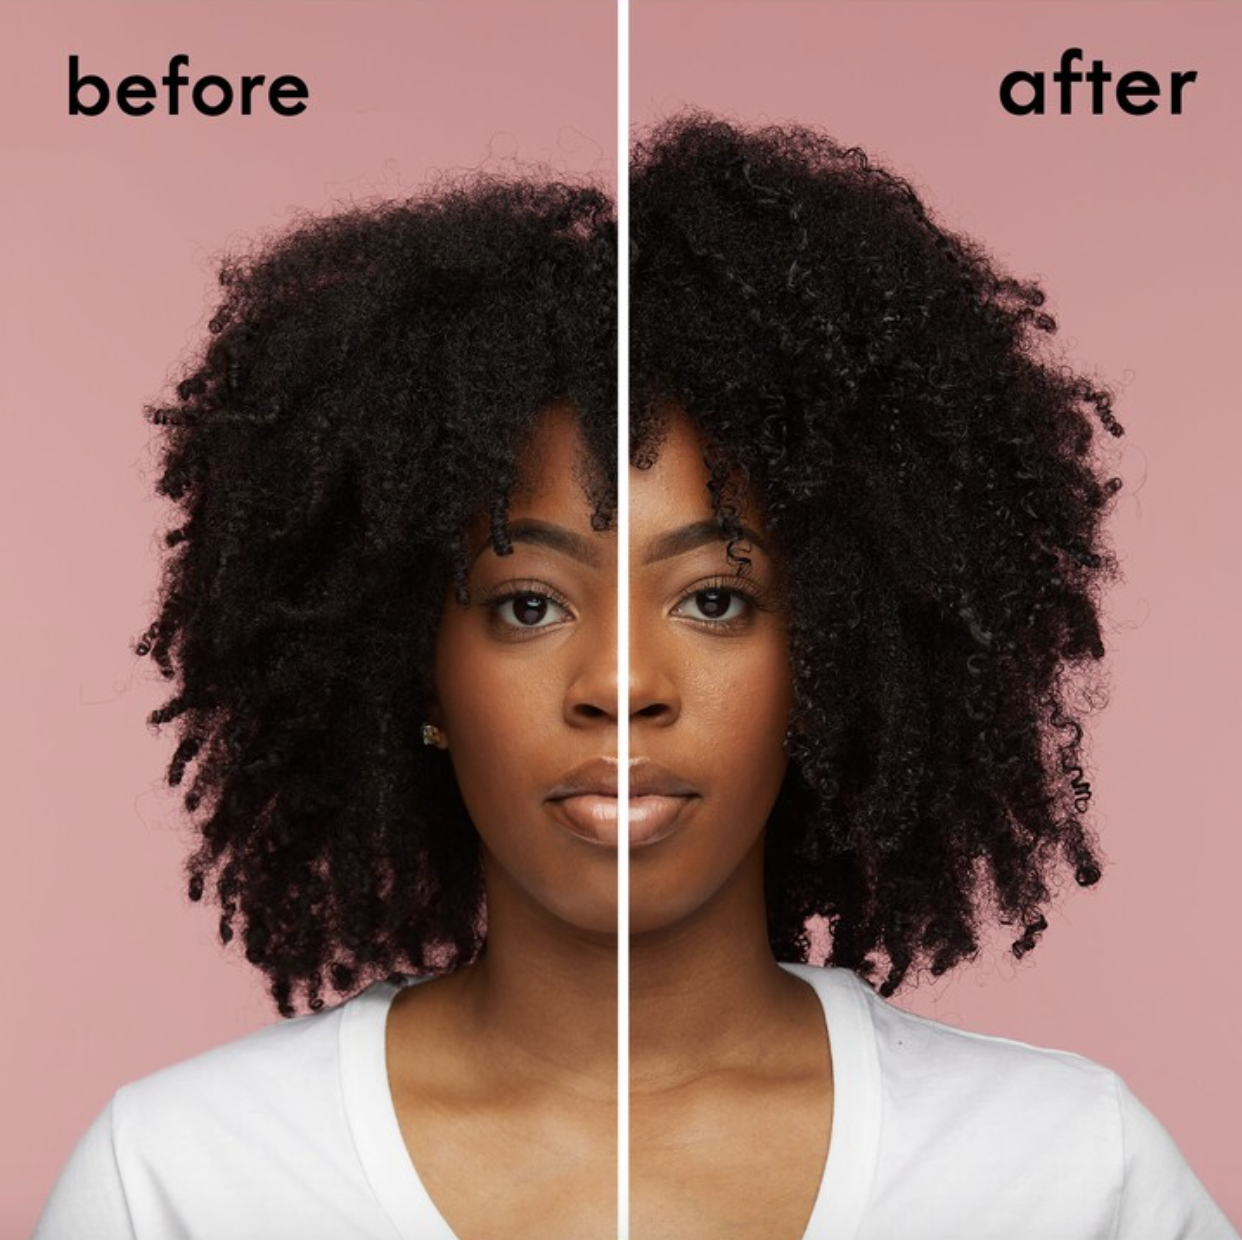 Black model with natural hair with bouncier, fuller curls after using the oil